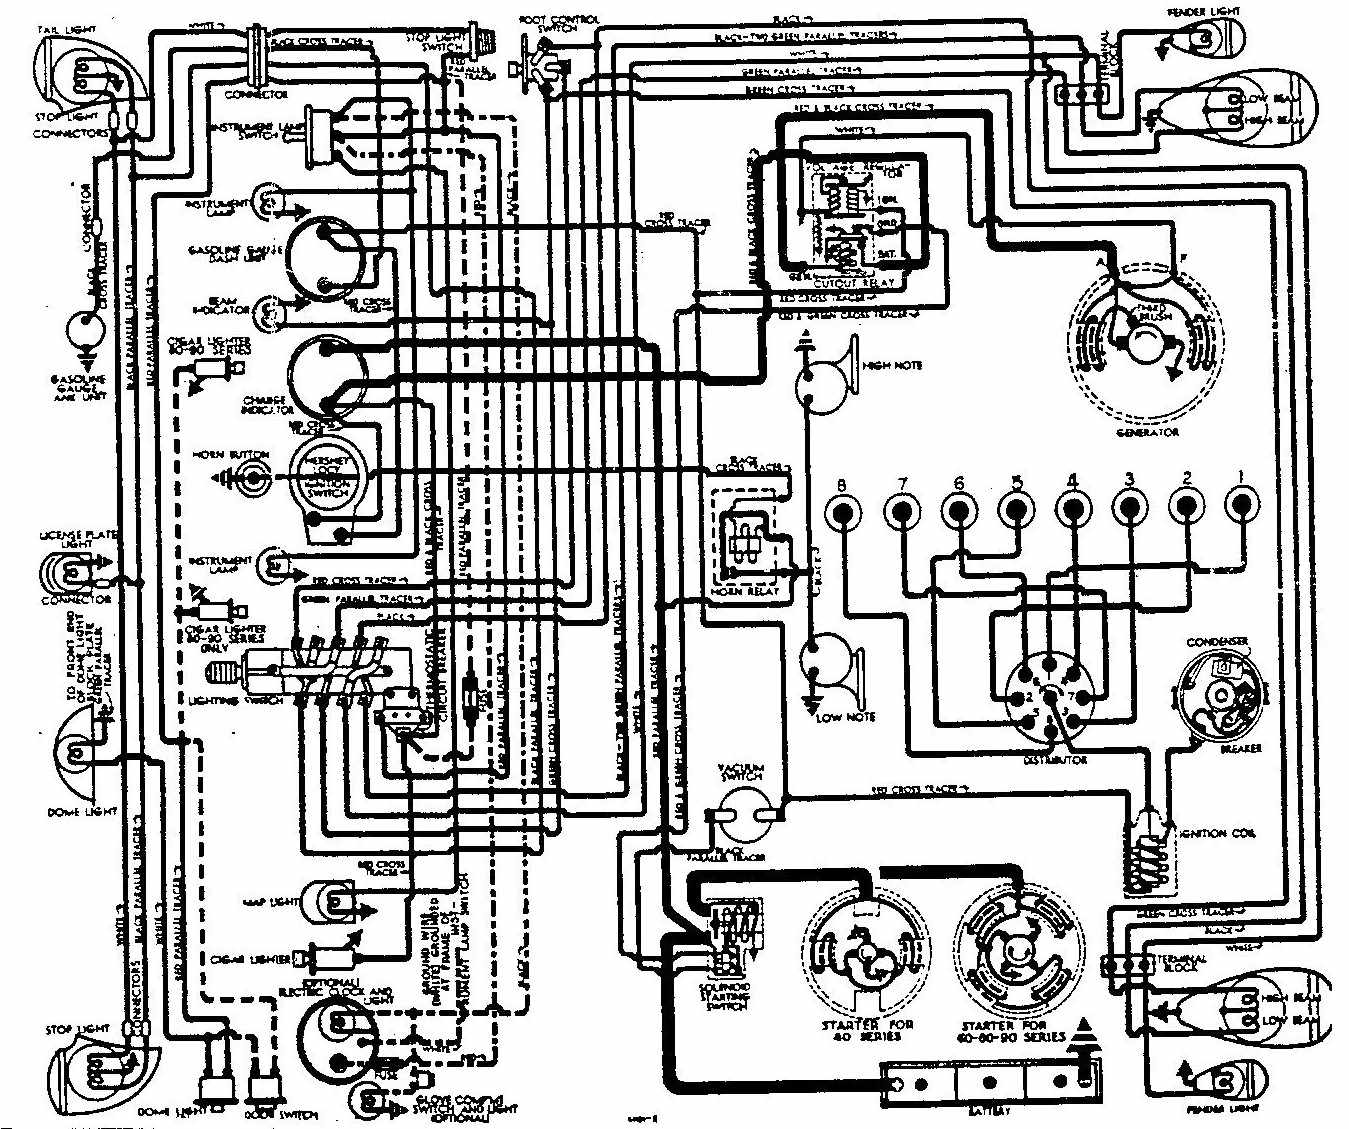 Unique duraspark wiring diagram picture collection best images for duraspark wiring chrysler